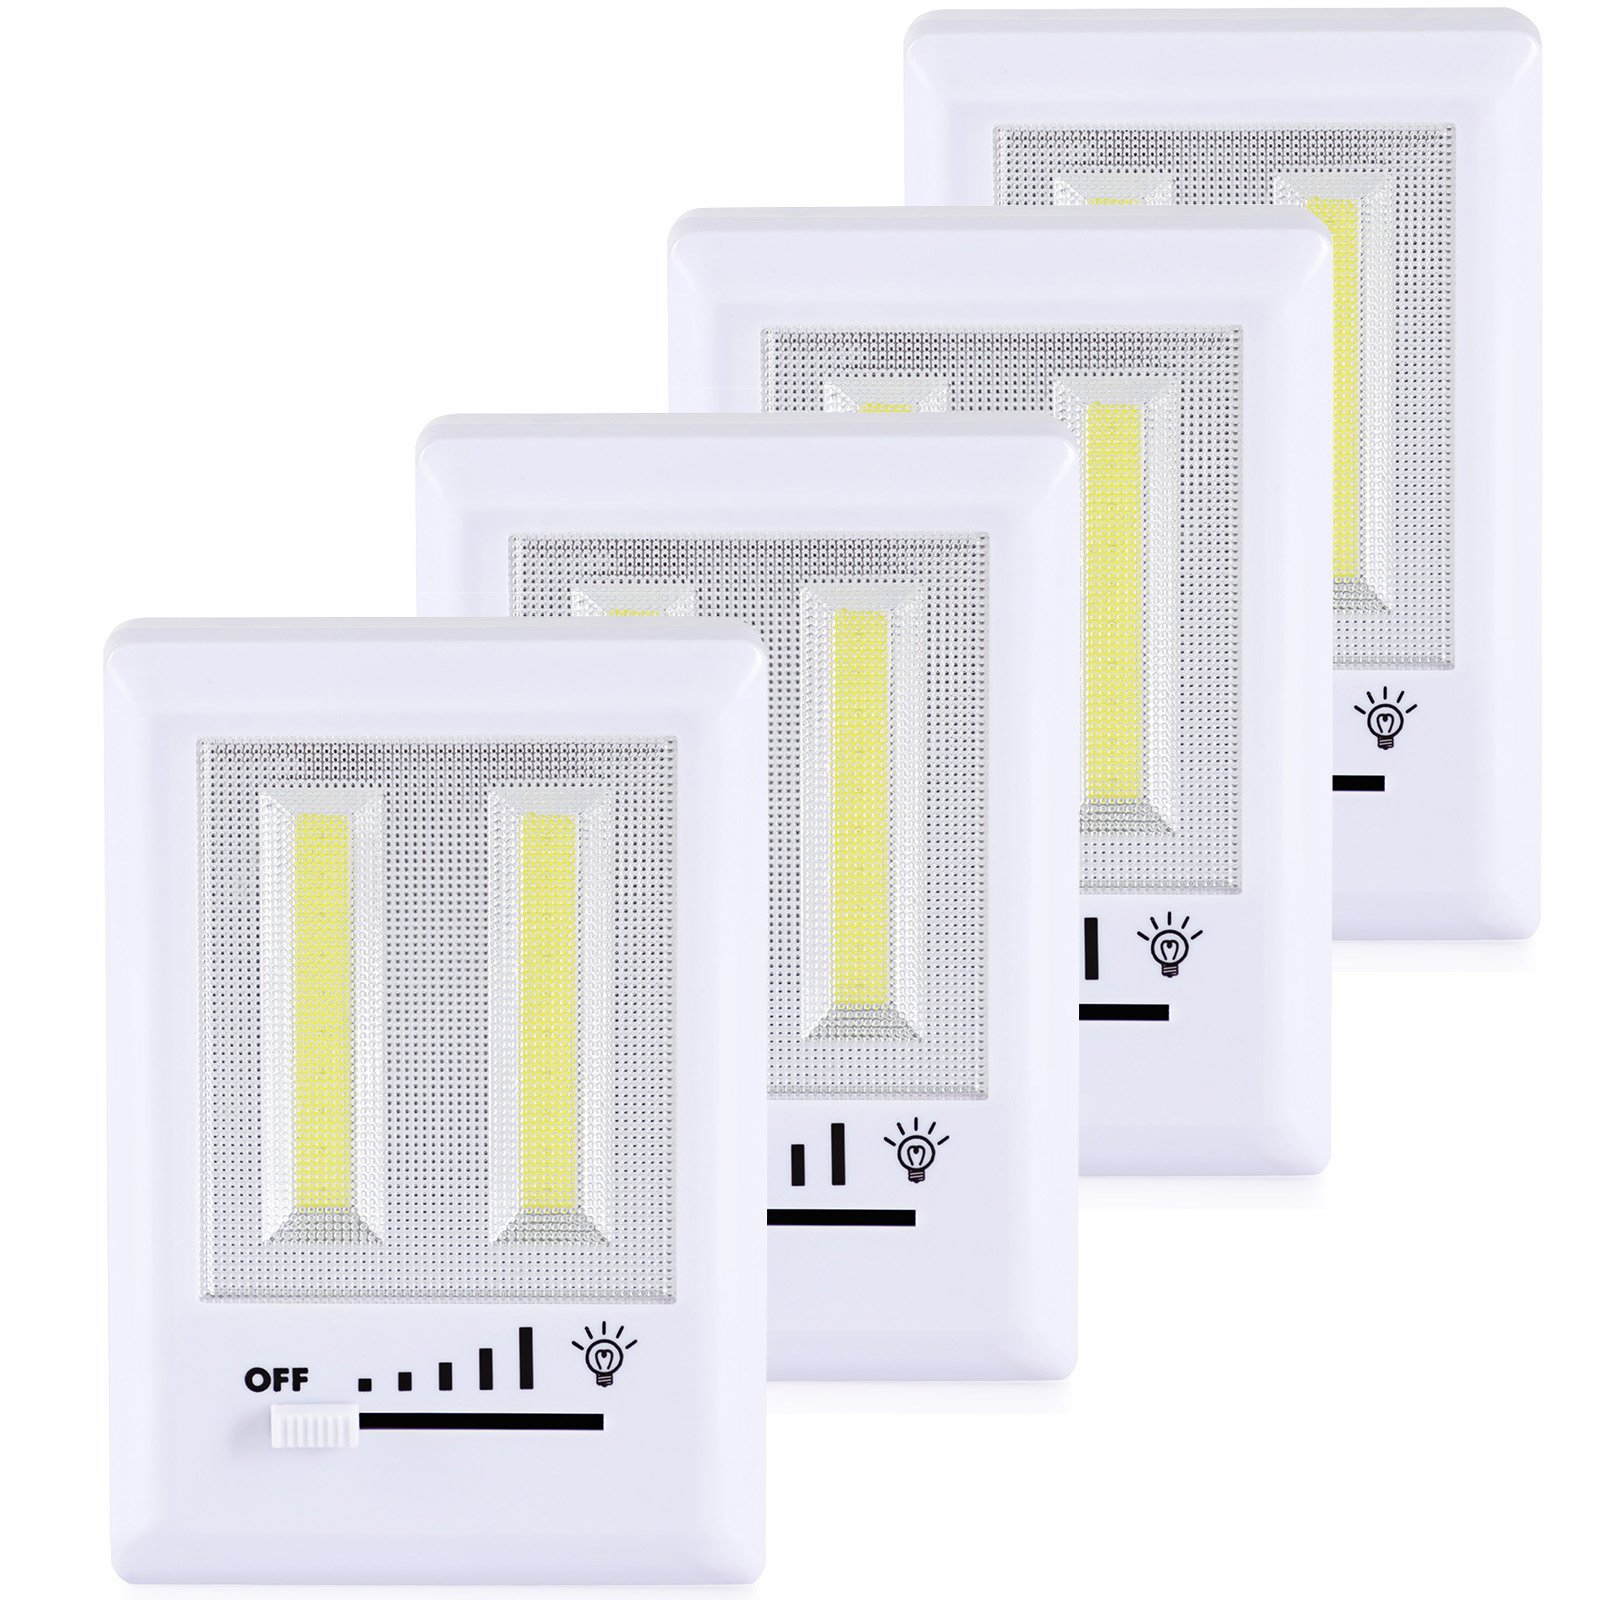 DEWENWILS LED Dimmer Switch Light, 200 Lumens Cordless Closet Switch Lights, Adjustable Brightness, Battery Operated, Reading Light for Kids, Emergency Working Lights, Stick Anywhere, 4 Pack